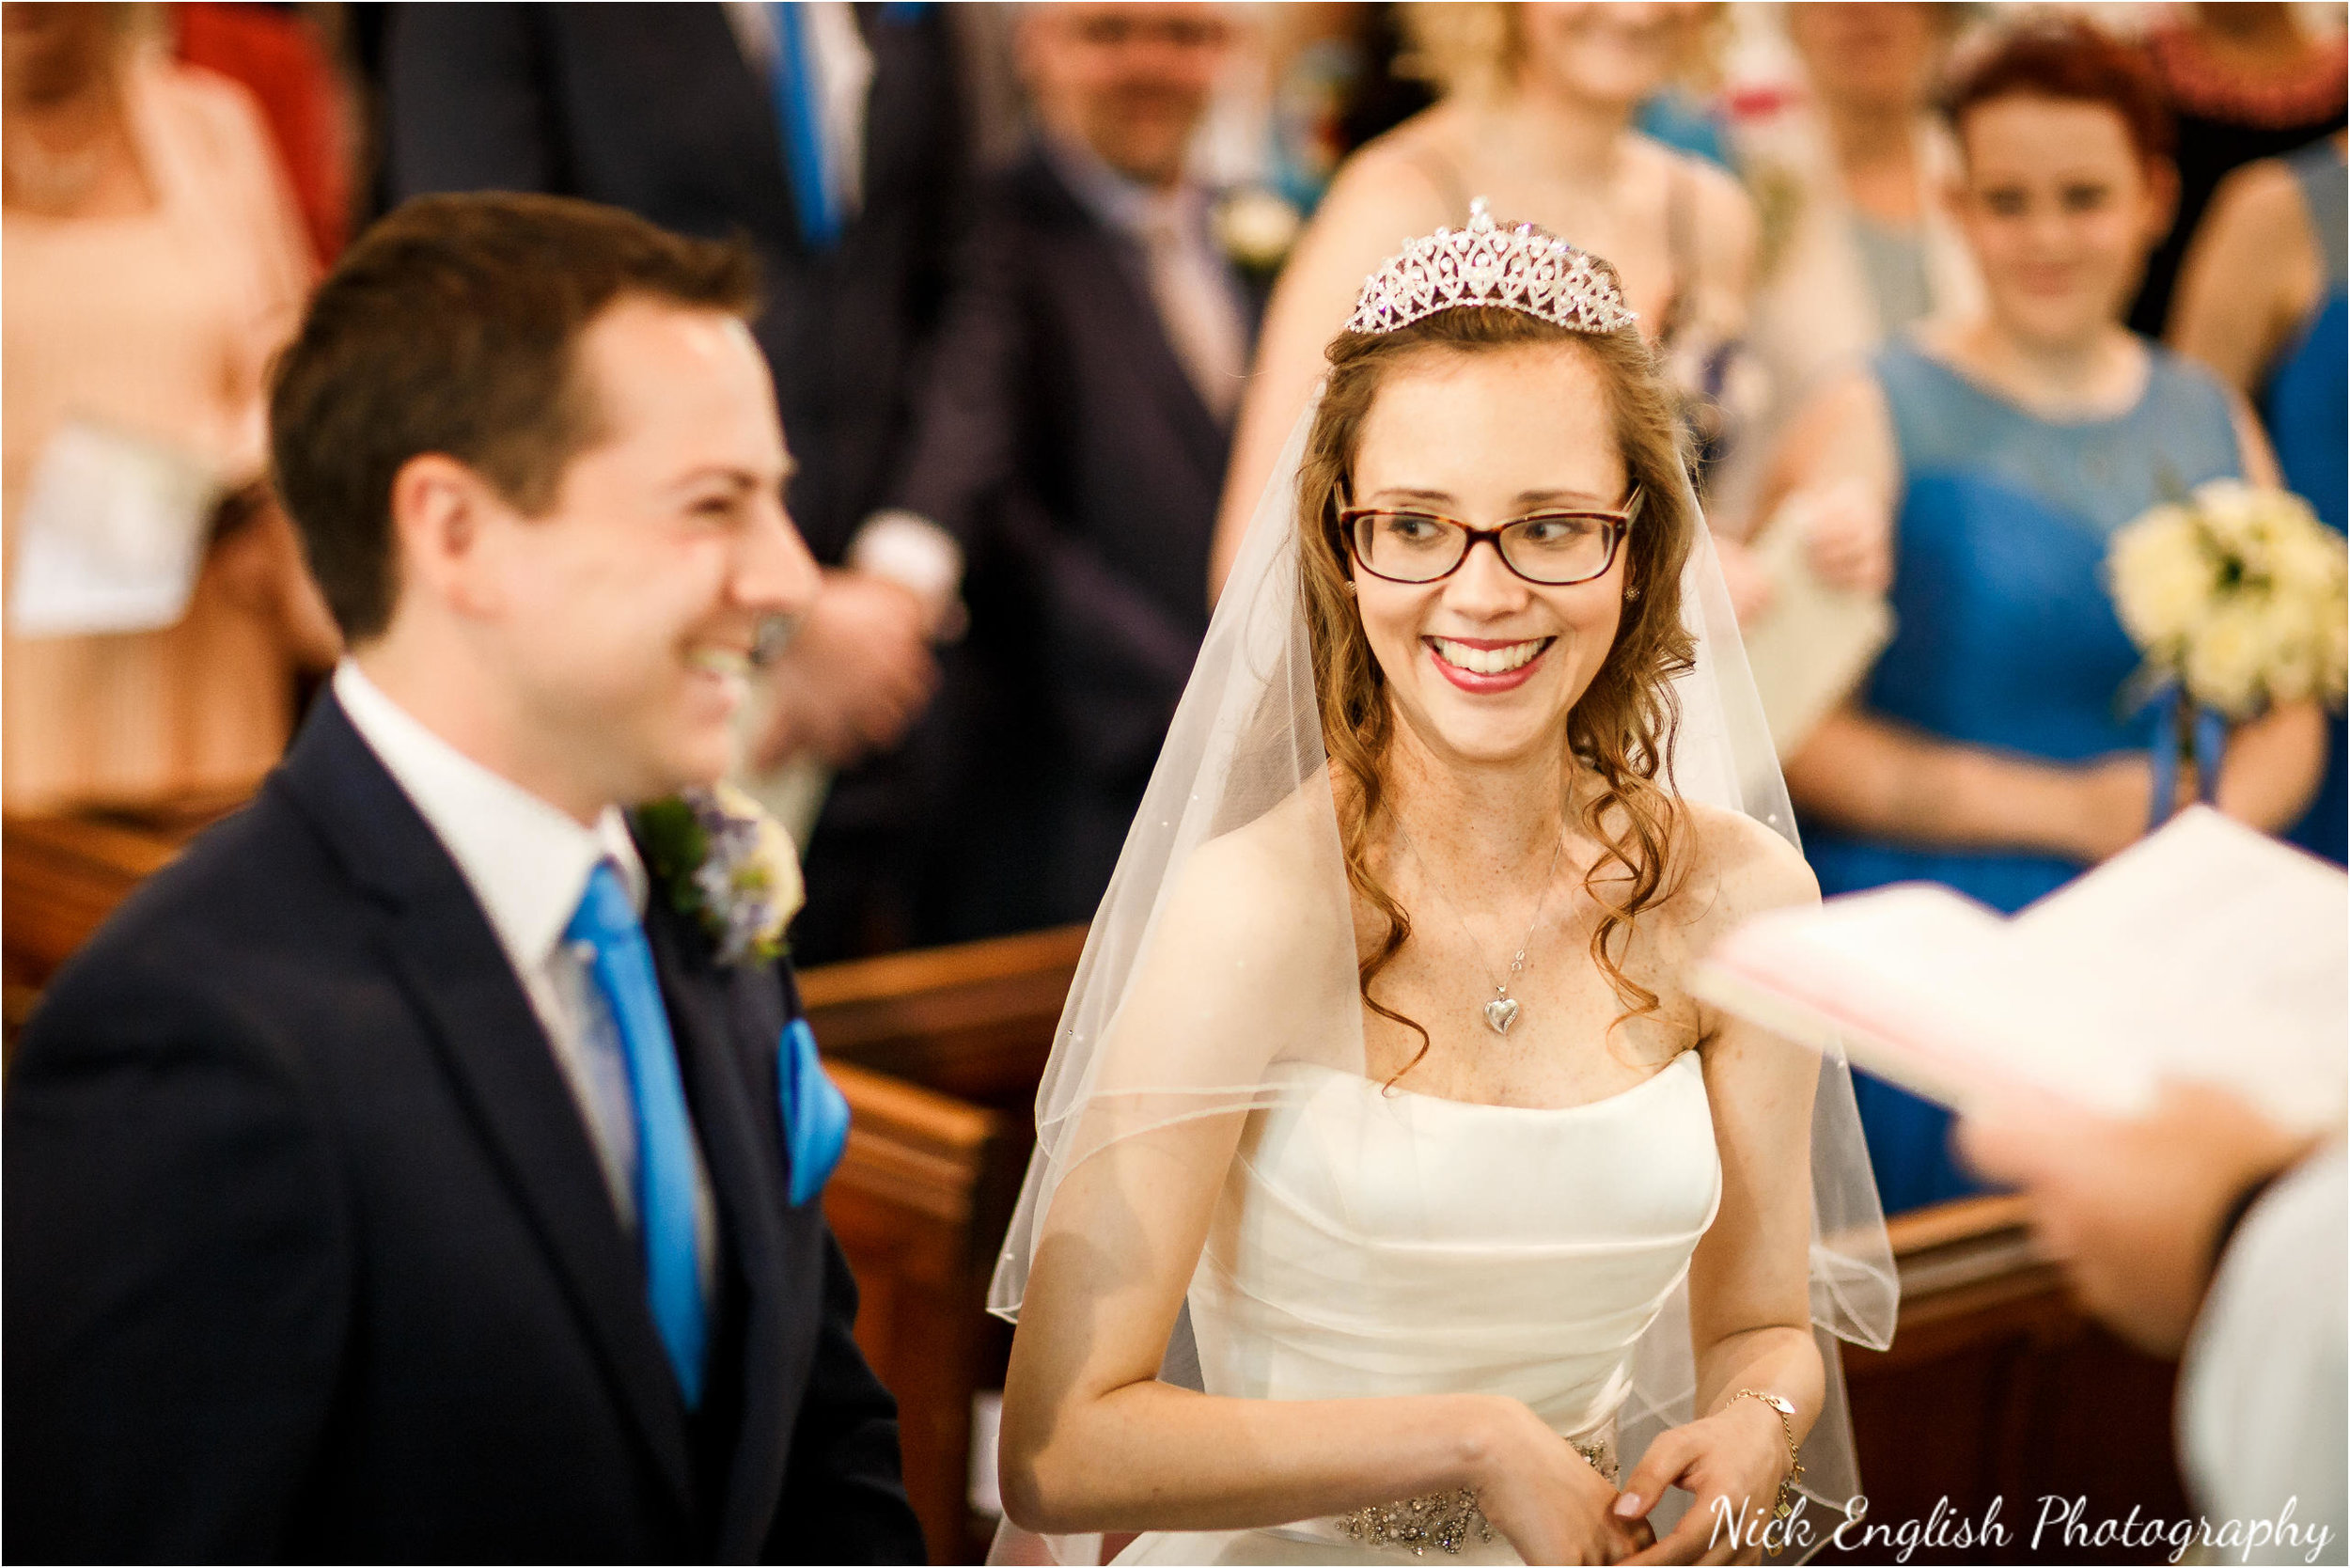 Derek Wright Georgina Wedding Photographs 83.jpg